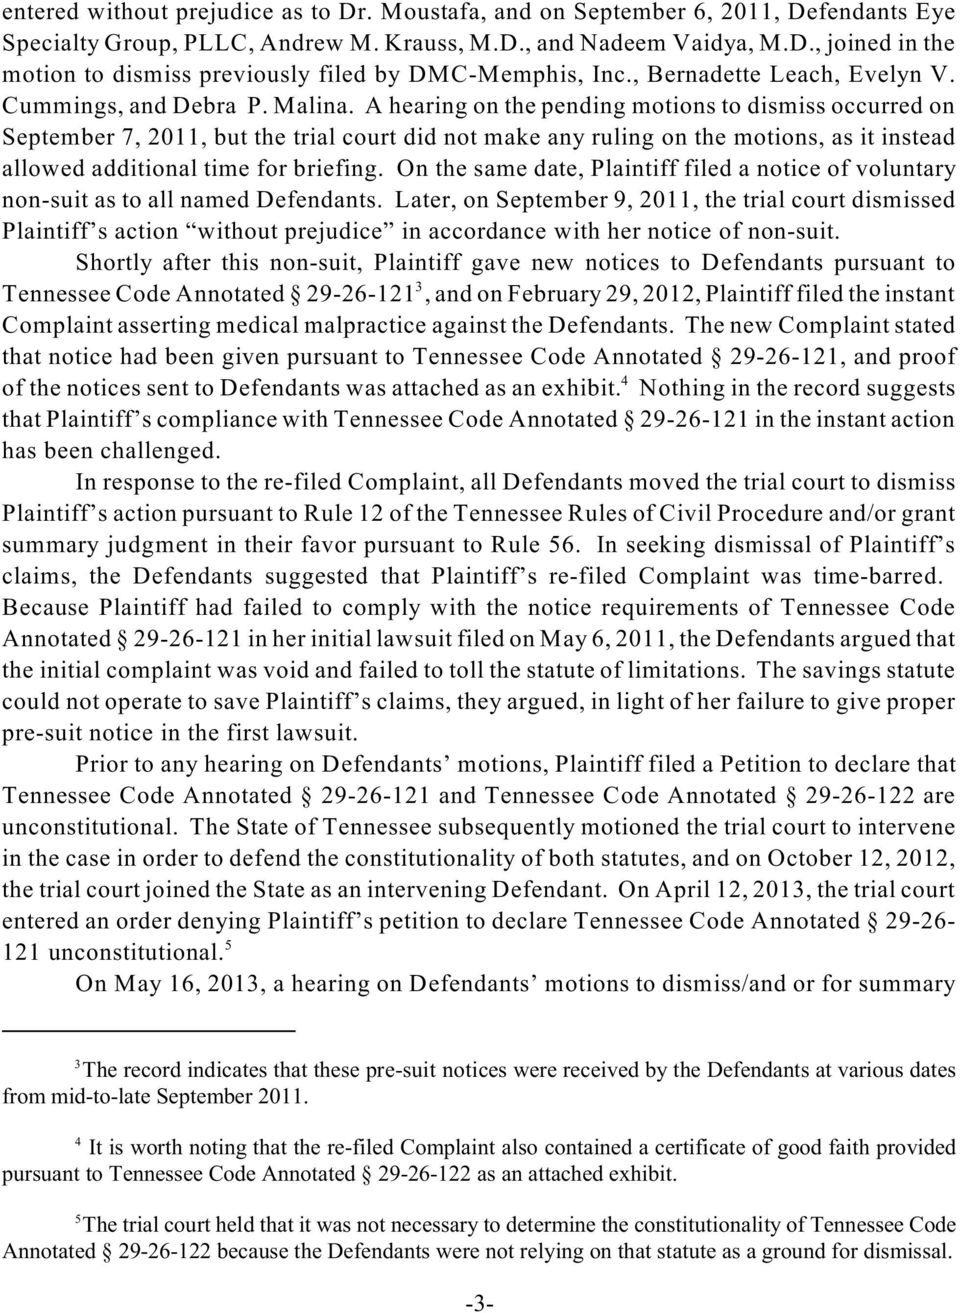 5 The trial court held that it was not necessary to determine the constitutionality of Tennessee Code Annotated 29-26-122 because the Defendants were not relying on that statute as a ground for